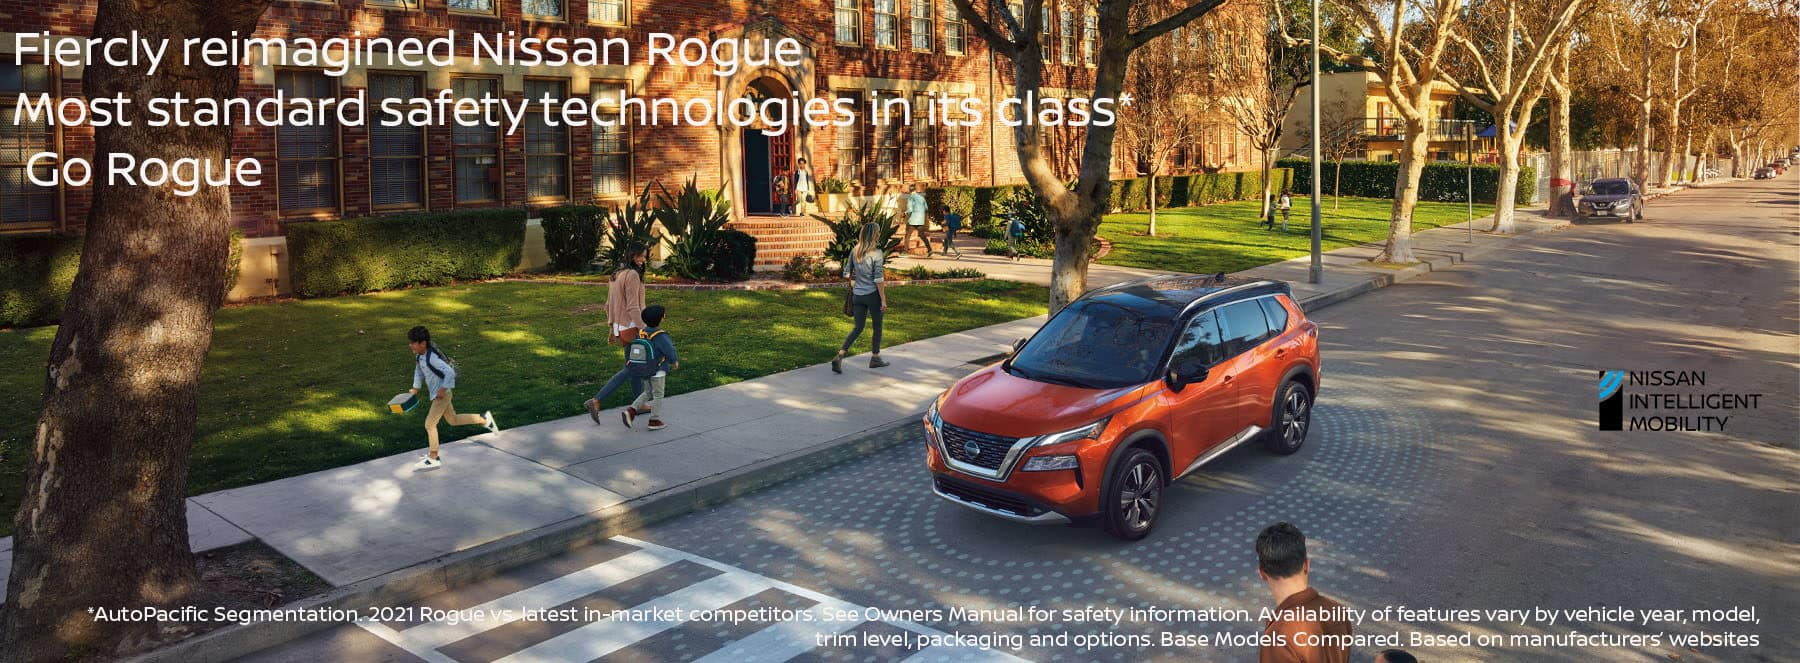 Nissan Rogue Call to Action copy